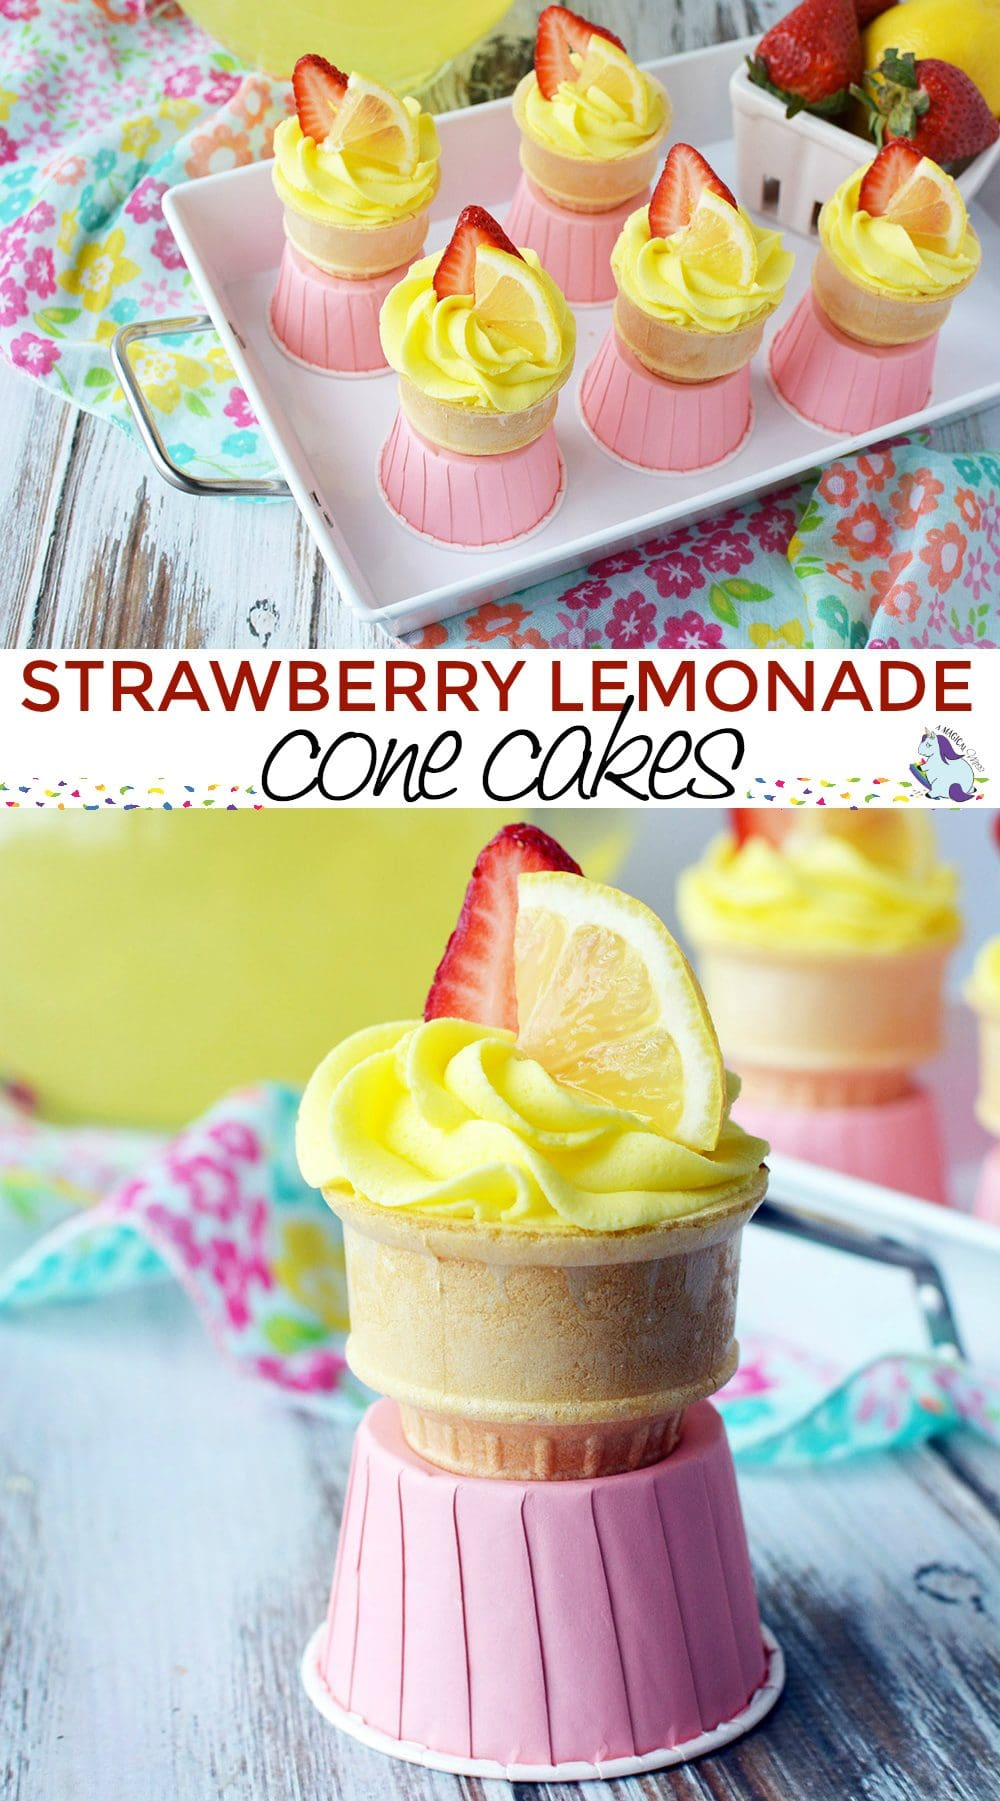 Strawberry Lemonade Cupcakes in a Cone Recipe